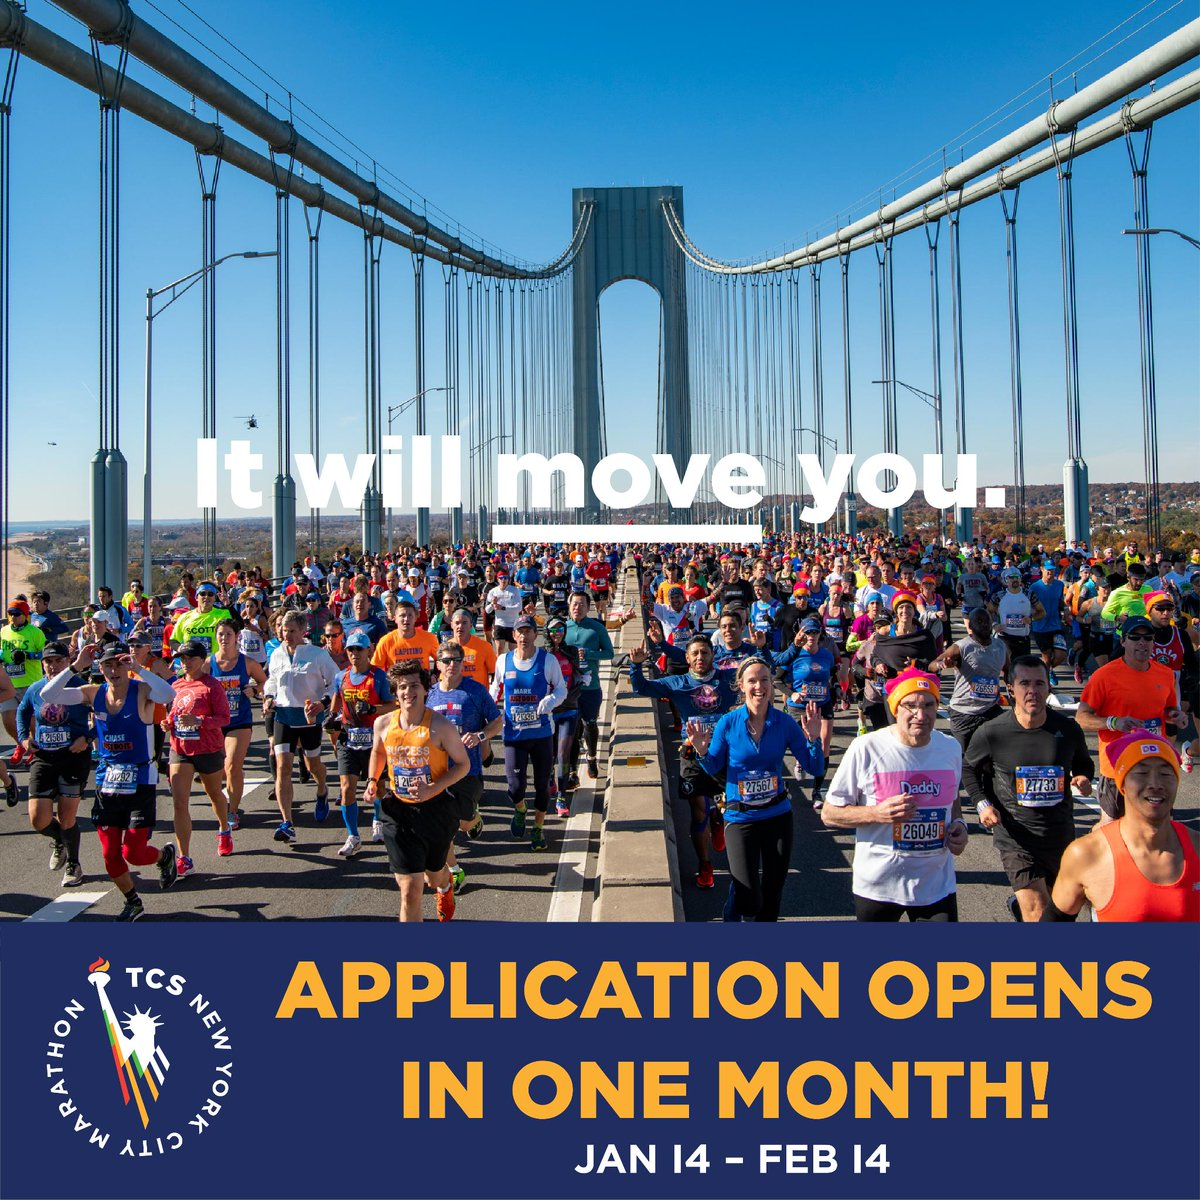 Save the date! 🗓️ The 2019 #TCSNYCMarathon application opens on Monday, January 14. Learn more about the application process here: bit.ly/2Lhb9tt